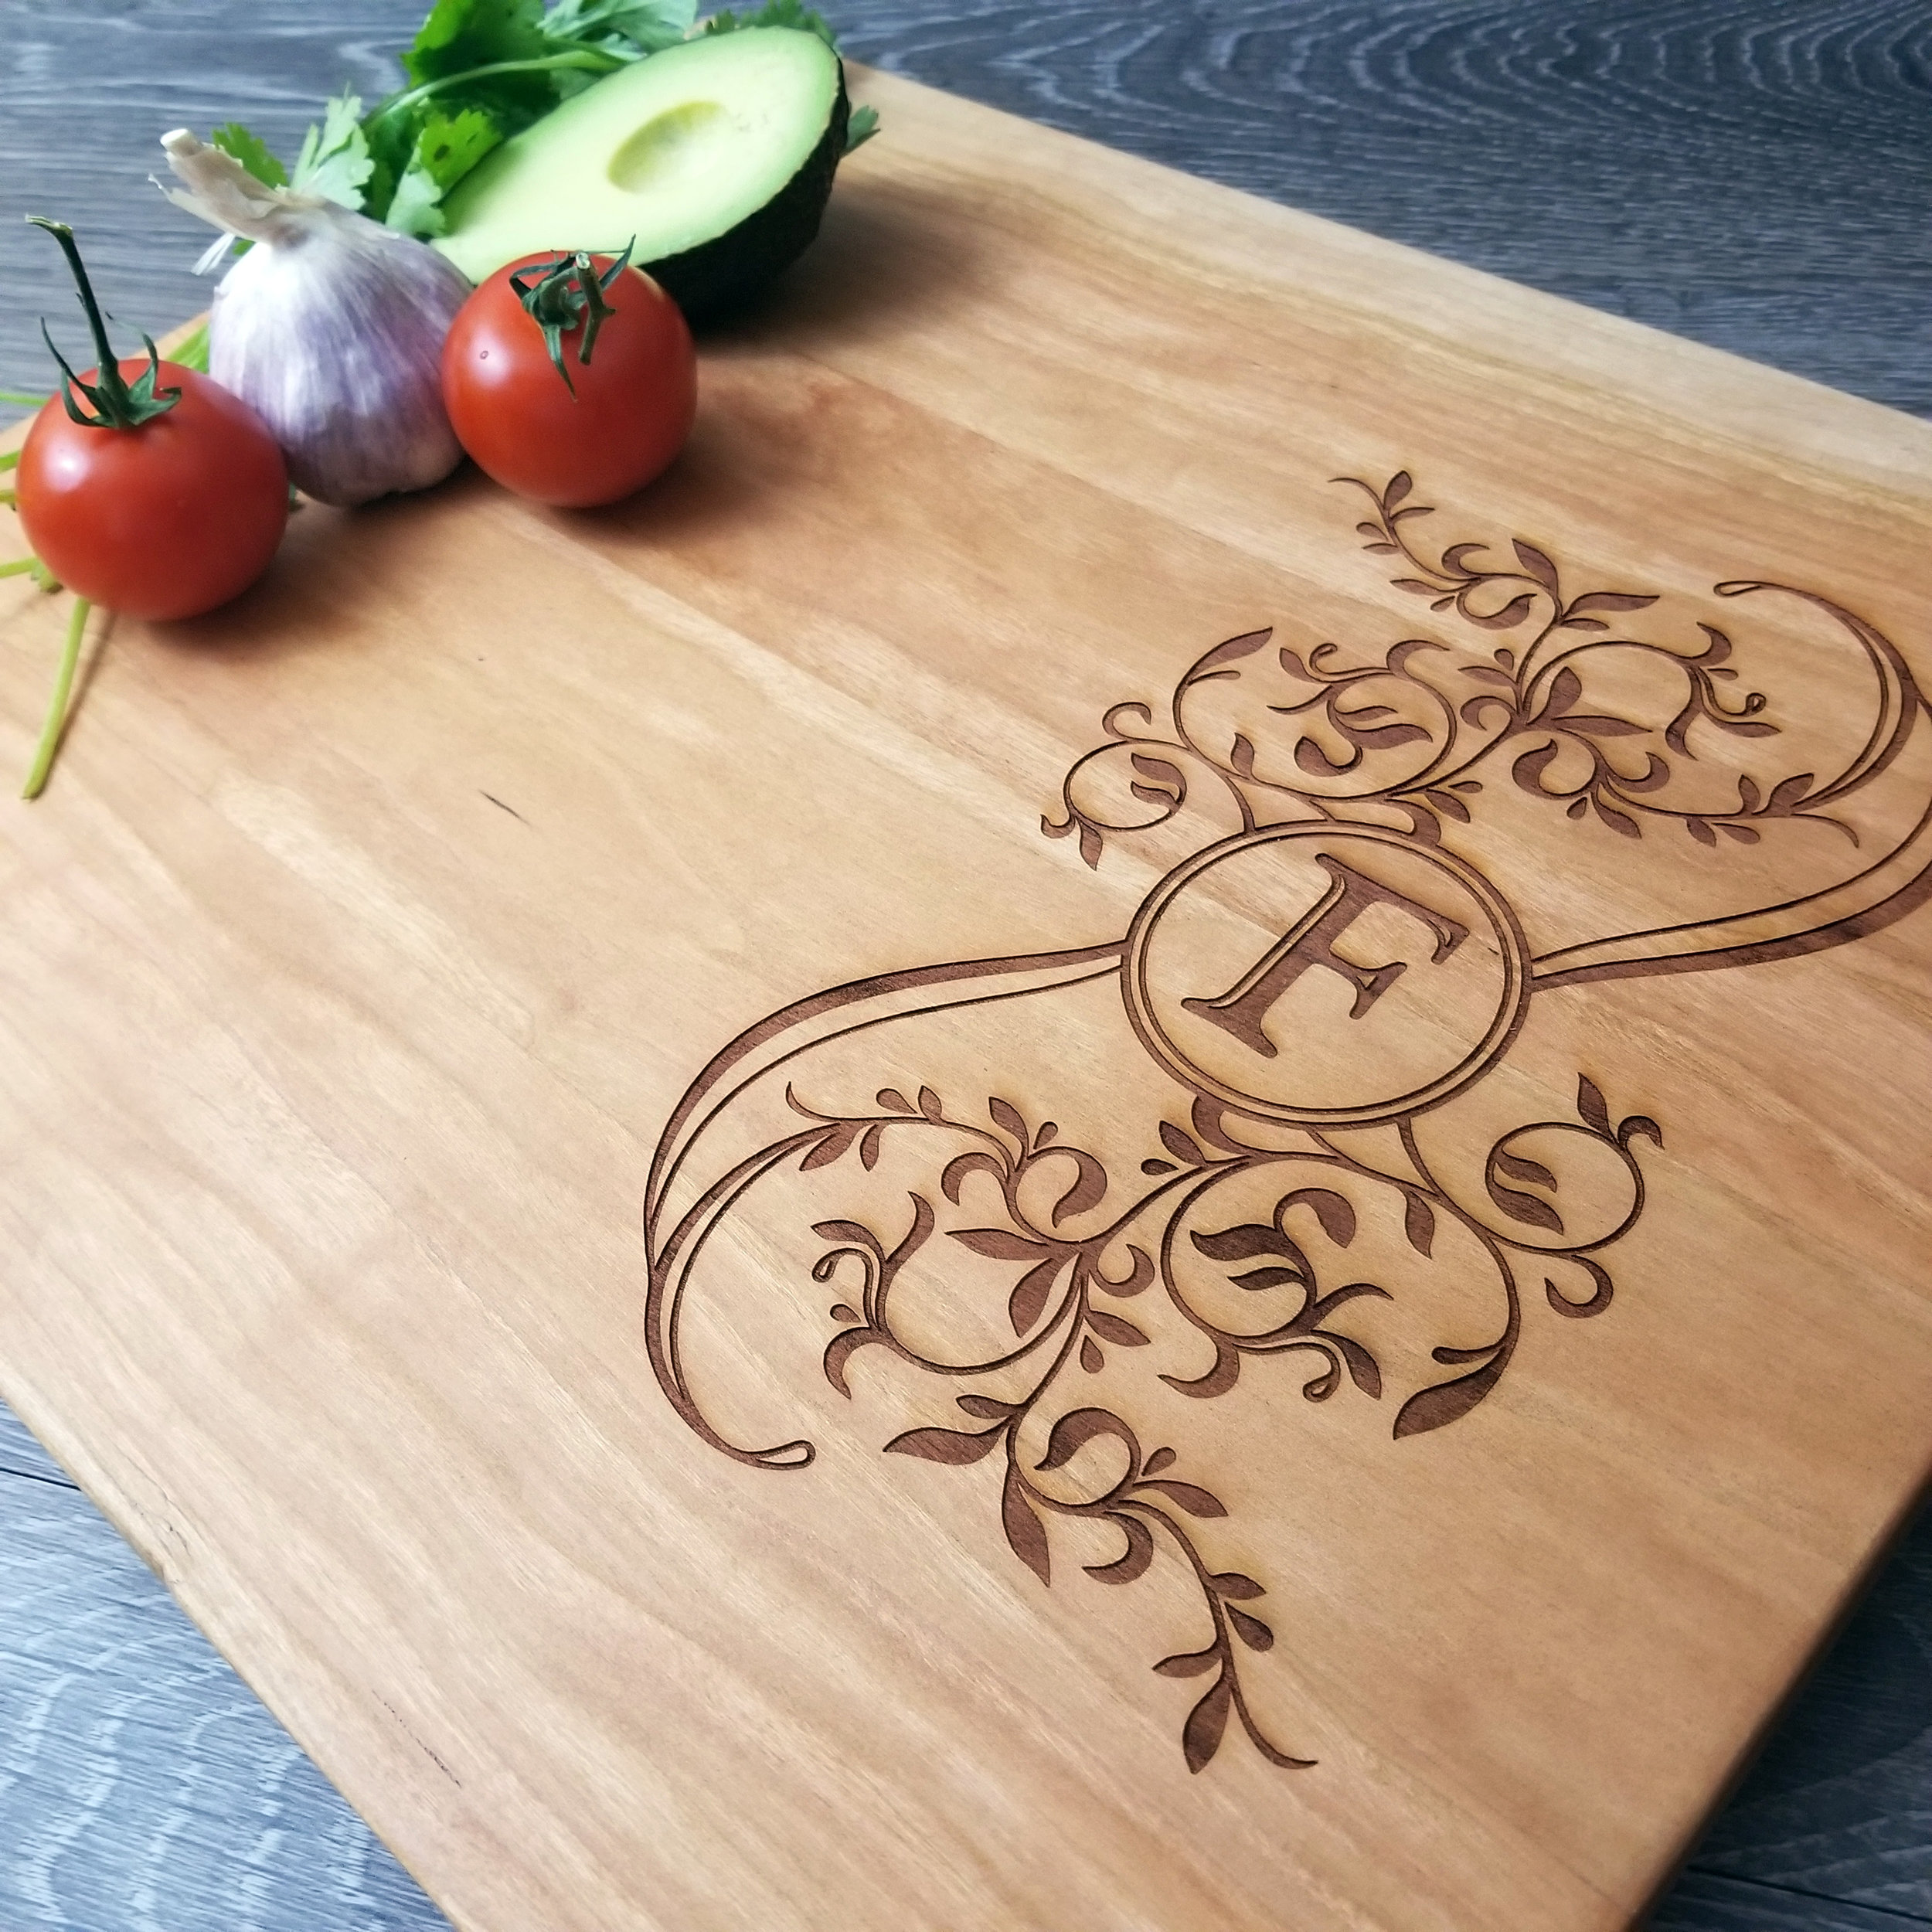 Personalized Wood Cutting Boards - We've done the work to find the 5 best wood types for cutting boards. Now, all you have to do is choose the one you like best.